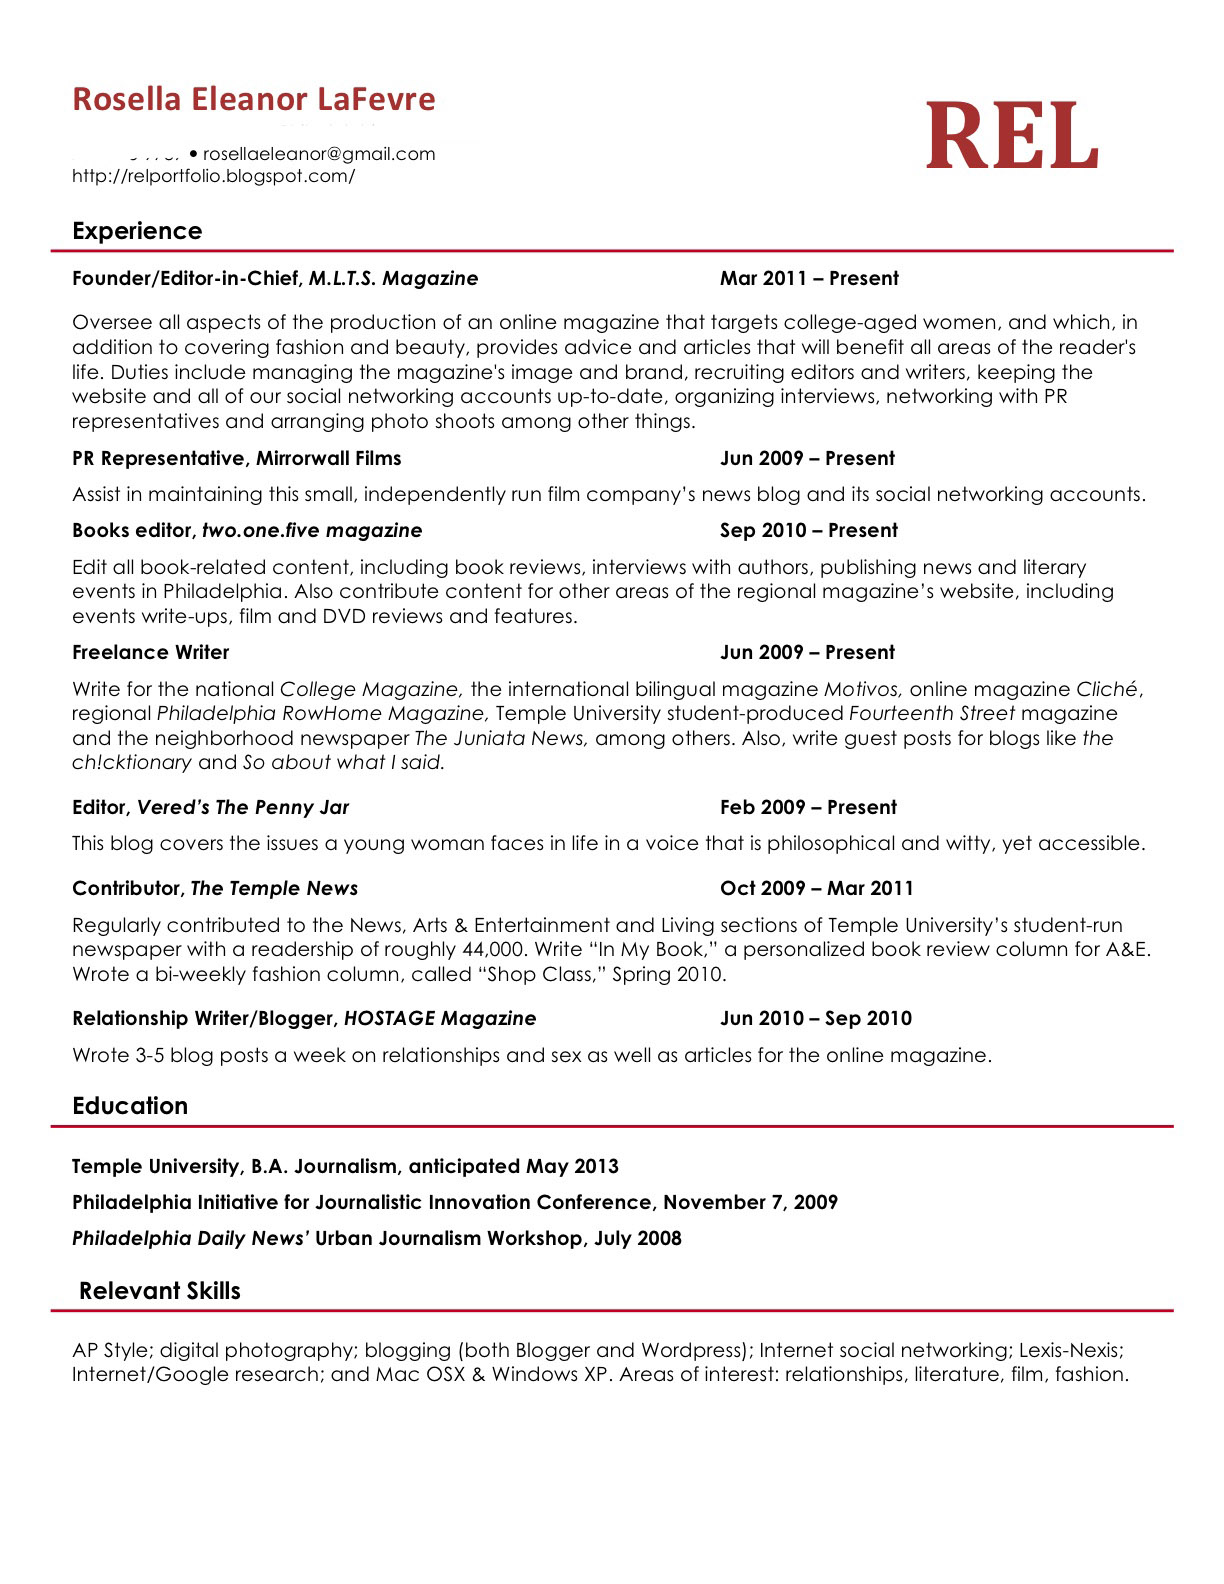 resume templates monster sample customer service resume resume templates monster cover letter and resume samples by industry monster copy resume templates professional